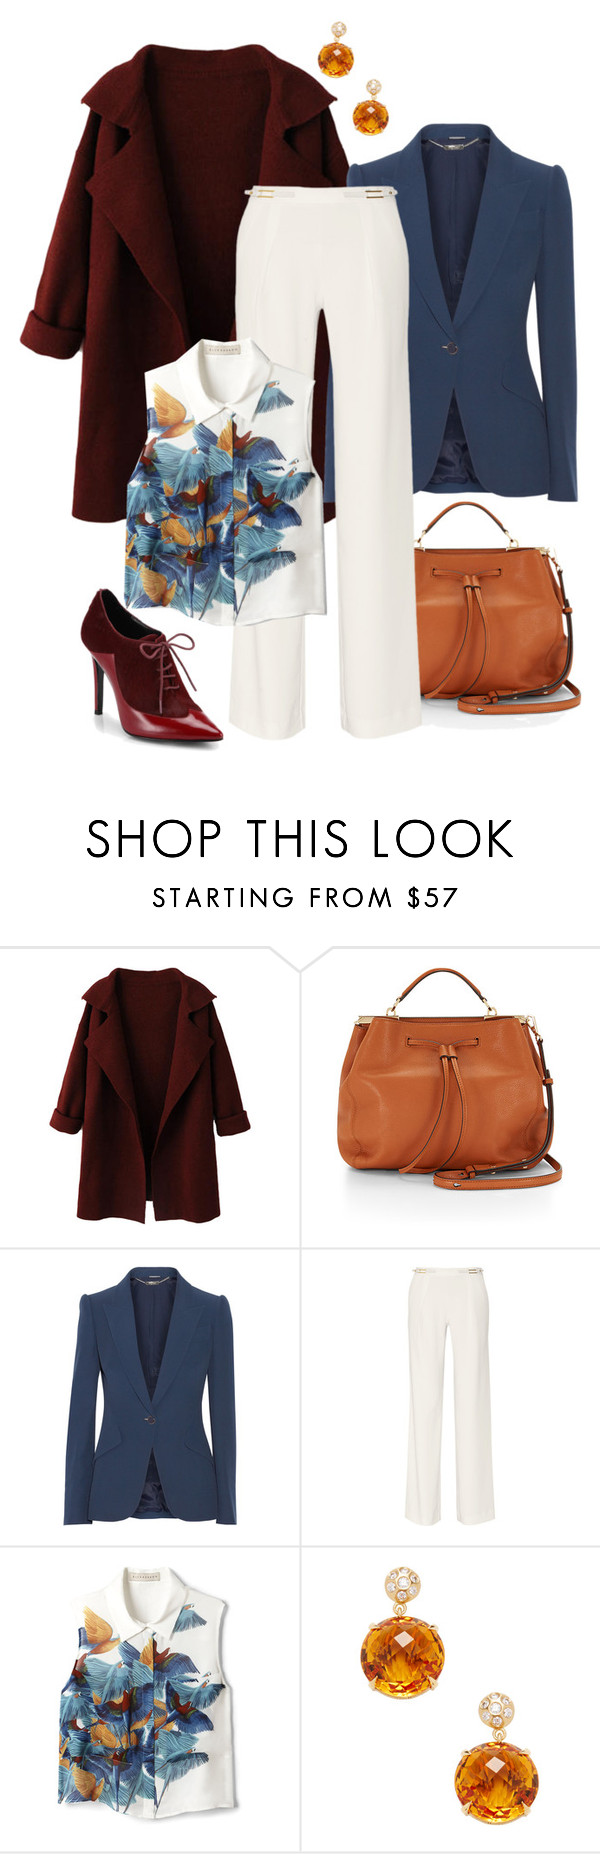 """""""Layering for the Office"""" by forestcat-lsc ❤ liked on Polyvore featuring Rebecca Minkoff, Alexander McQueen, Halston Heritage, Elle Sasson, Carelle and Sigerson Morrison"""